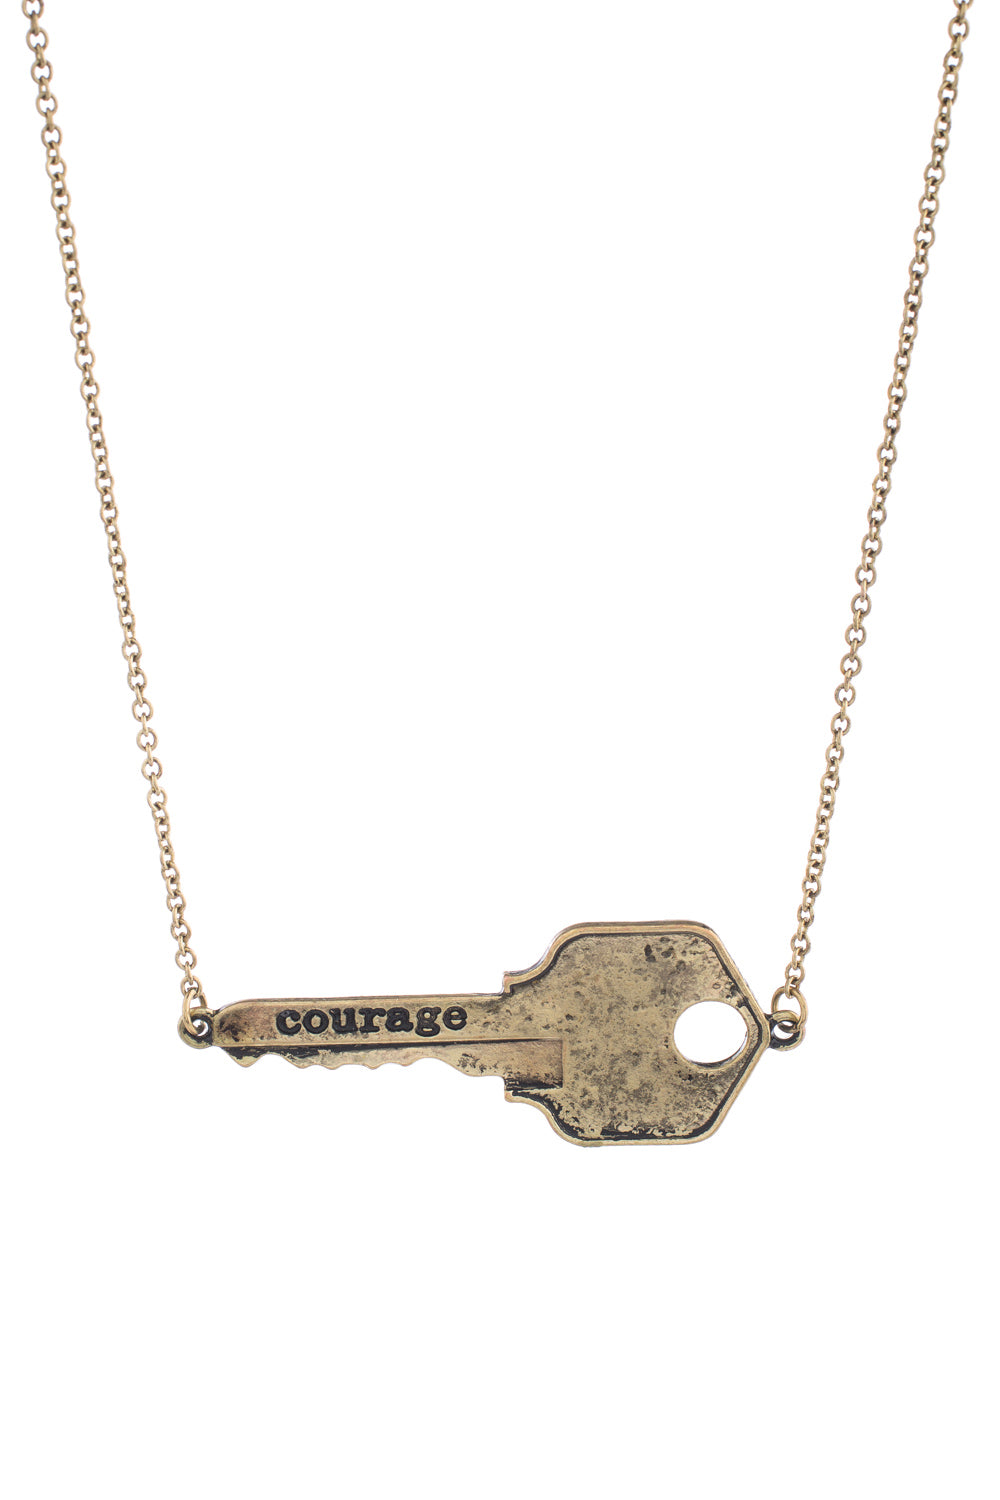 Type 3 Key To Courage Necklace